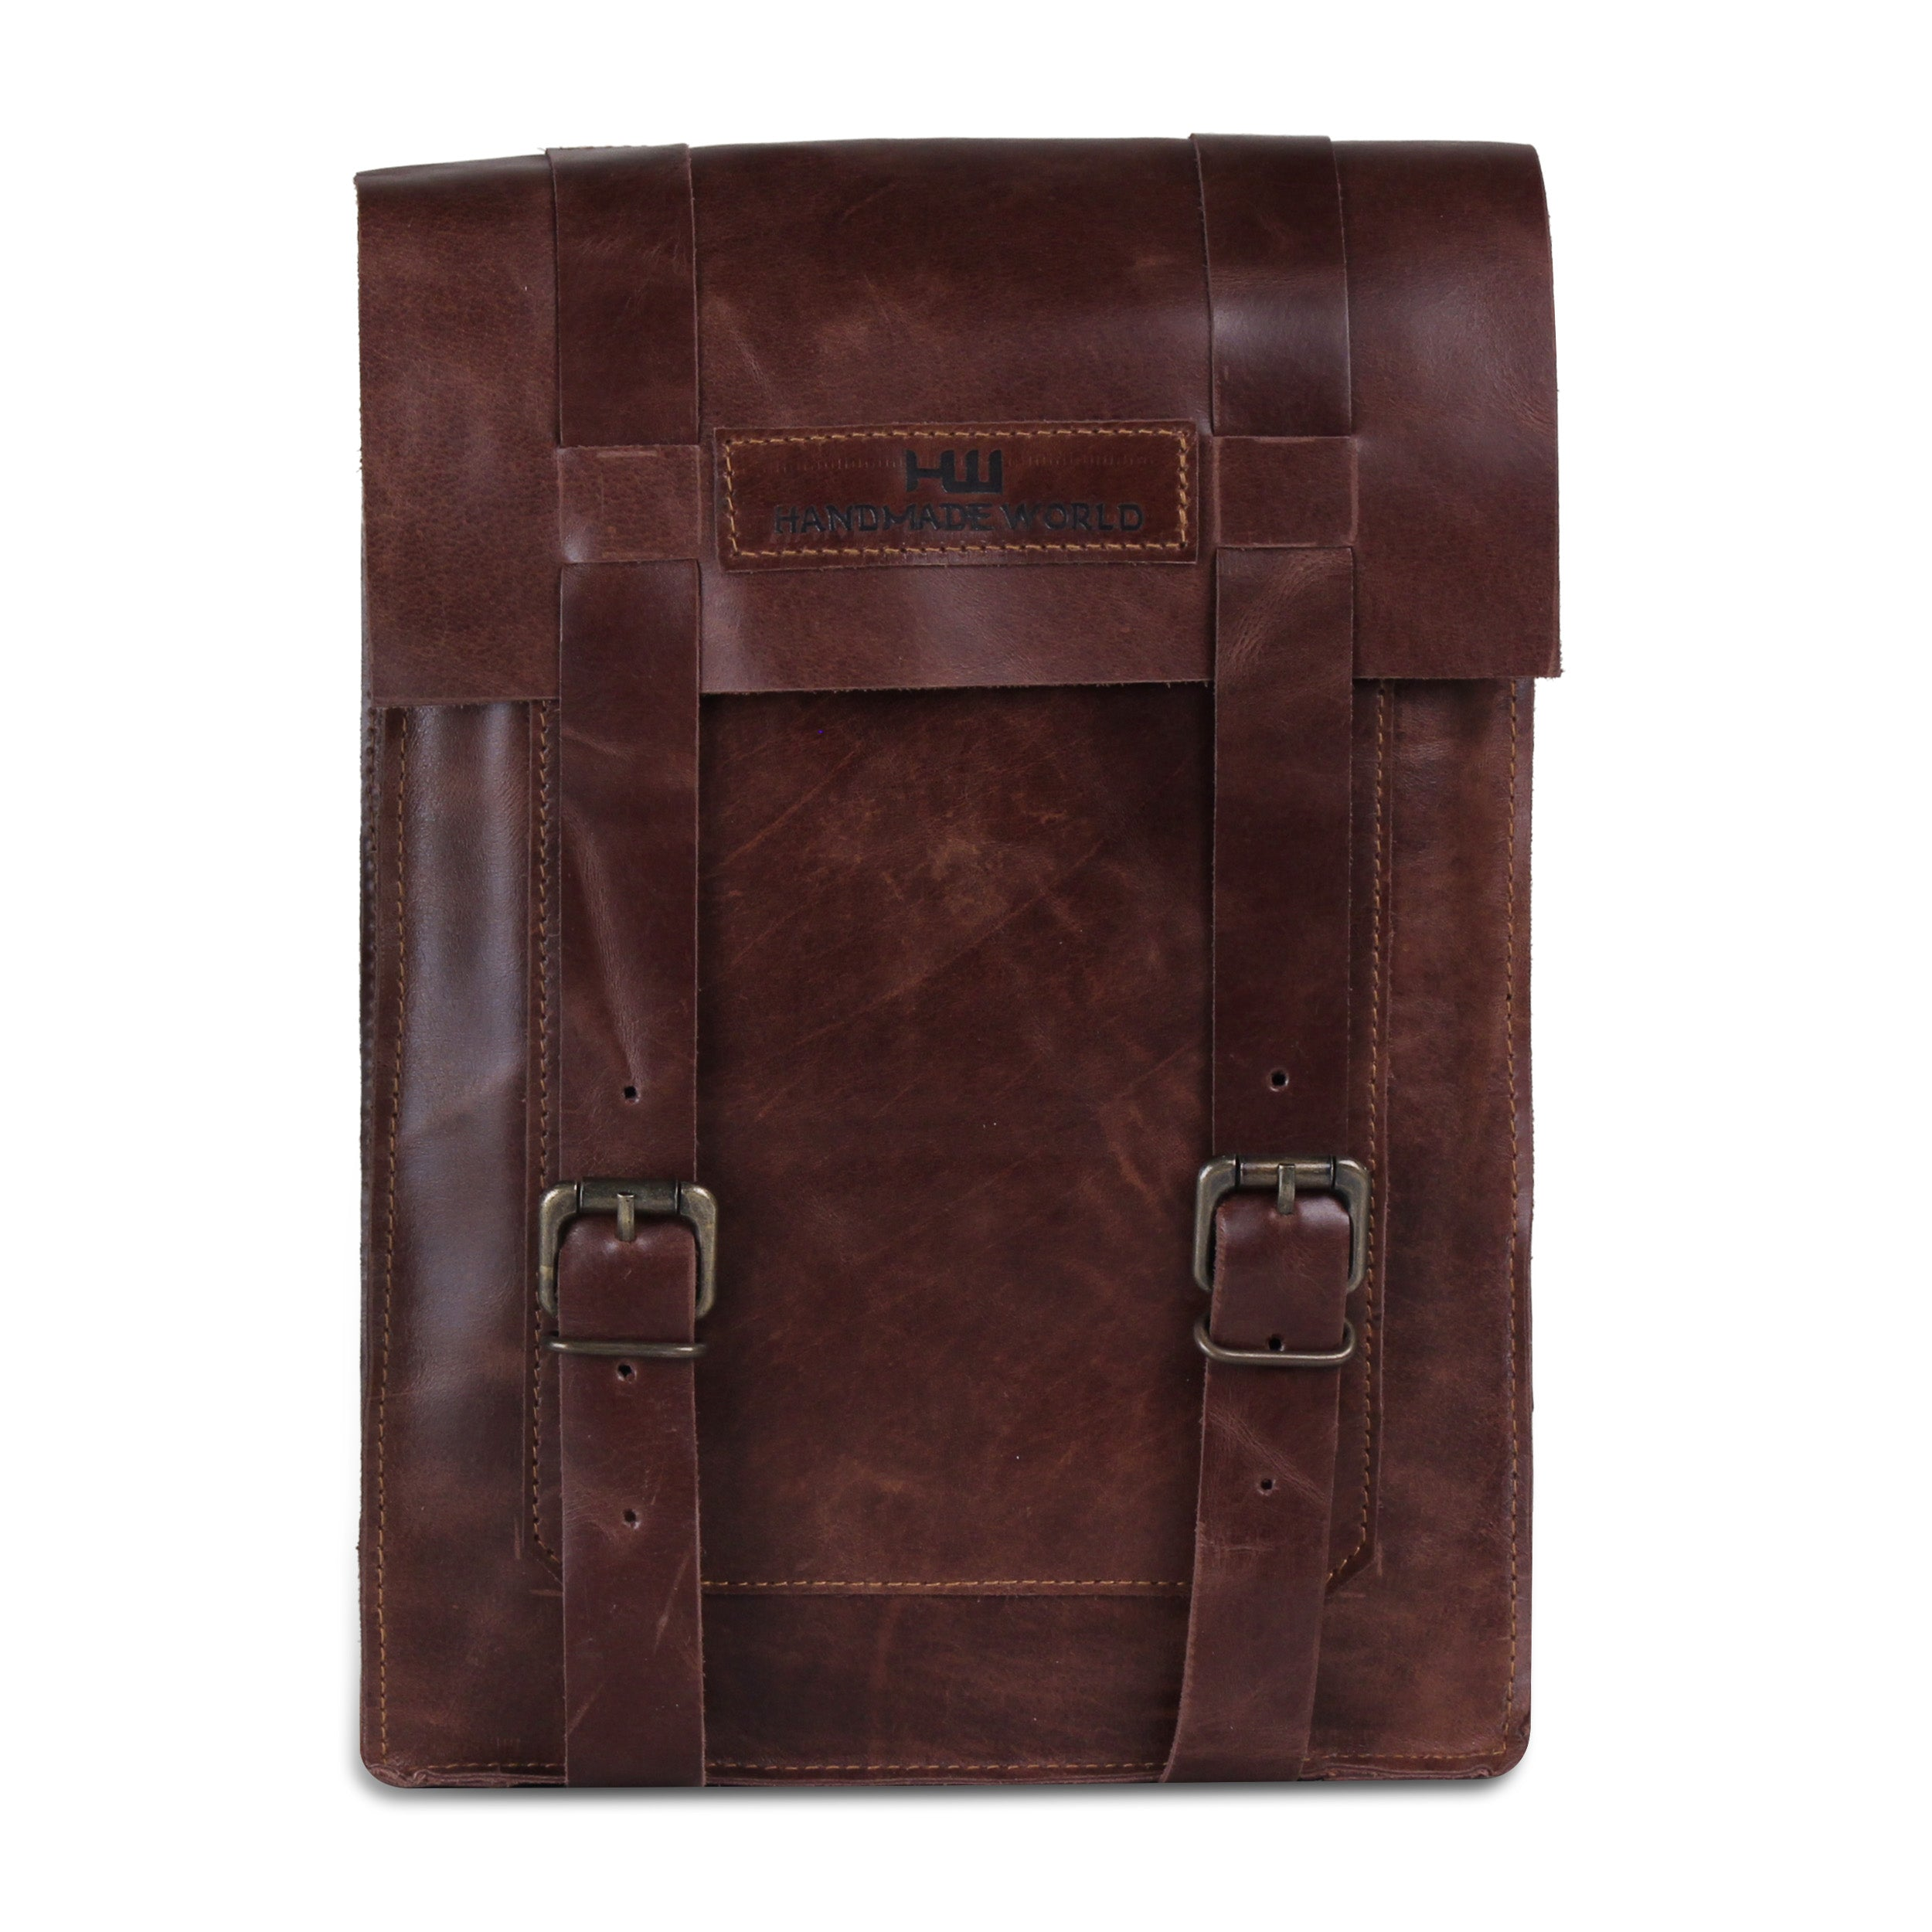 Leather Messenger bag with Top Handle for iPad